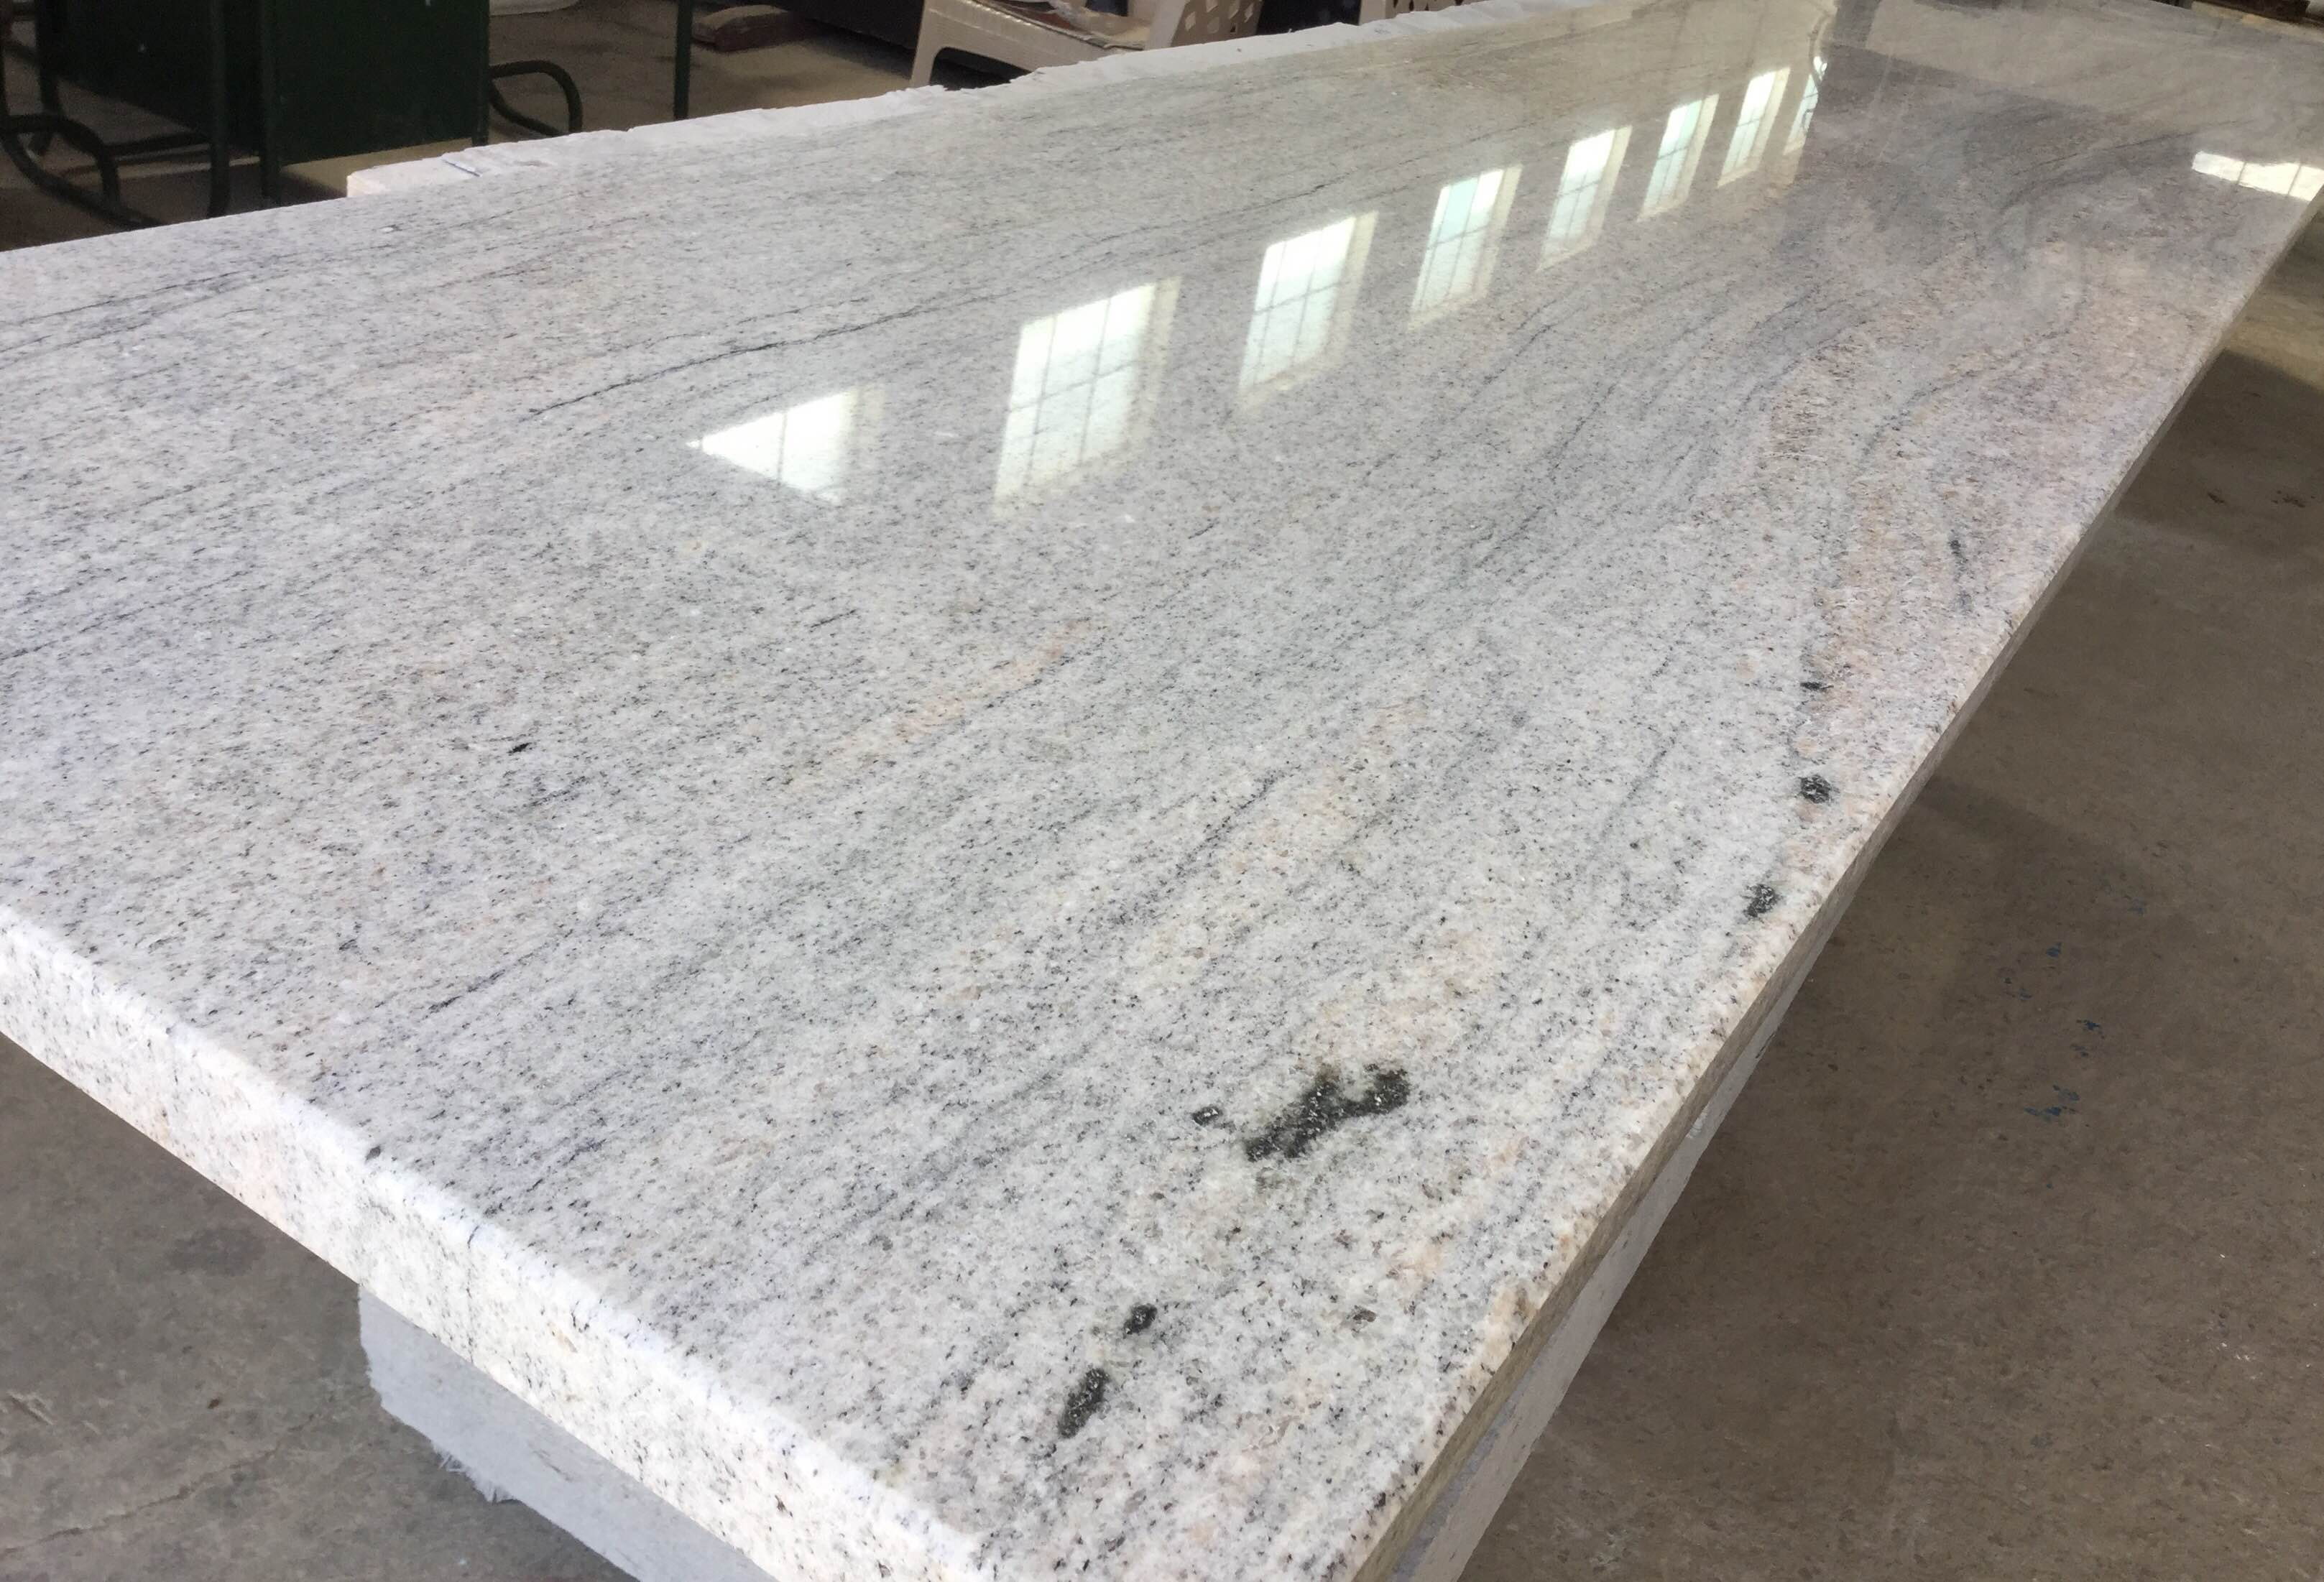 packing of imperial white granite slabs the materials send to london granite block suppliers. Black Bedroom Furniture Sets. Home Design Ideas